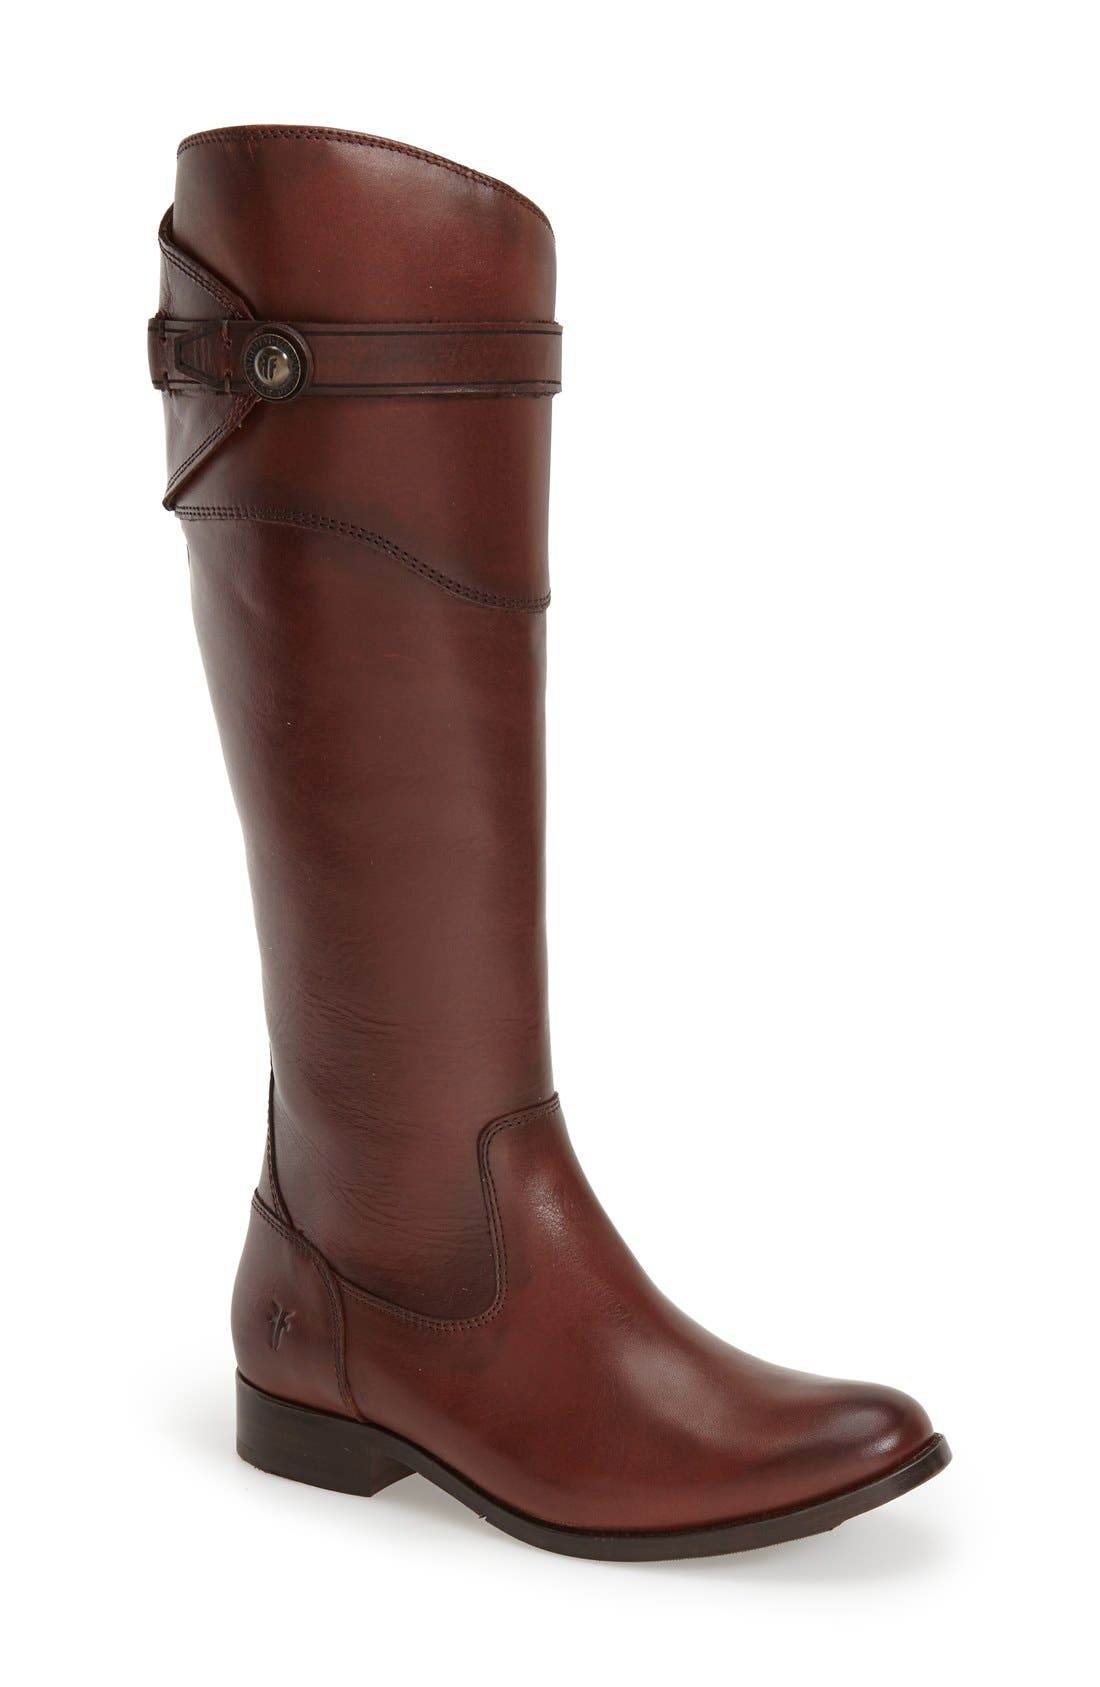 Alternate Image 1 Selected - Frye 'Molly Button' Riding Boot (Women)